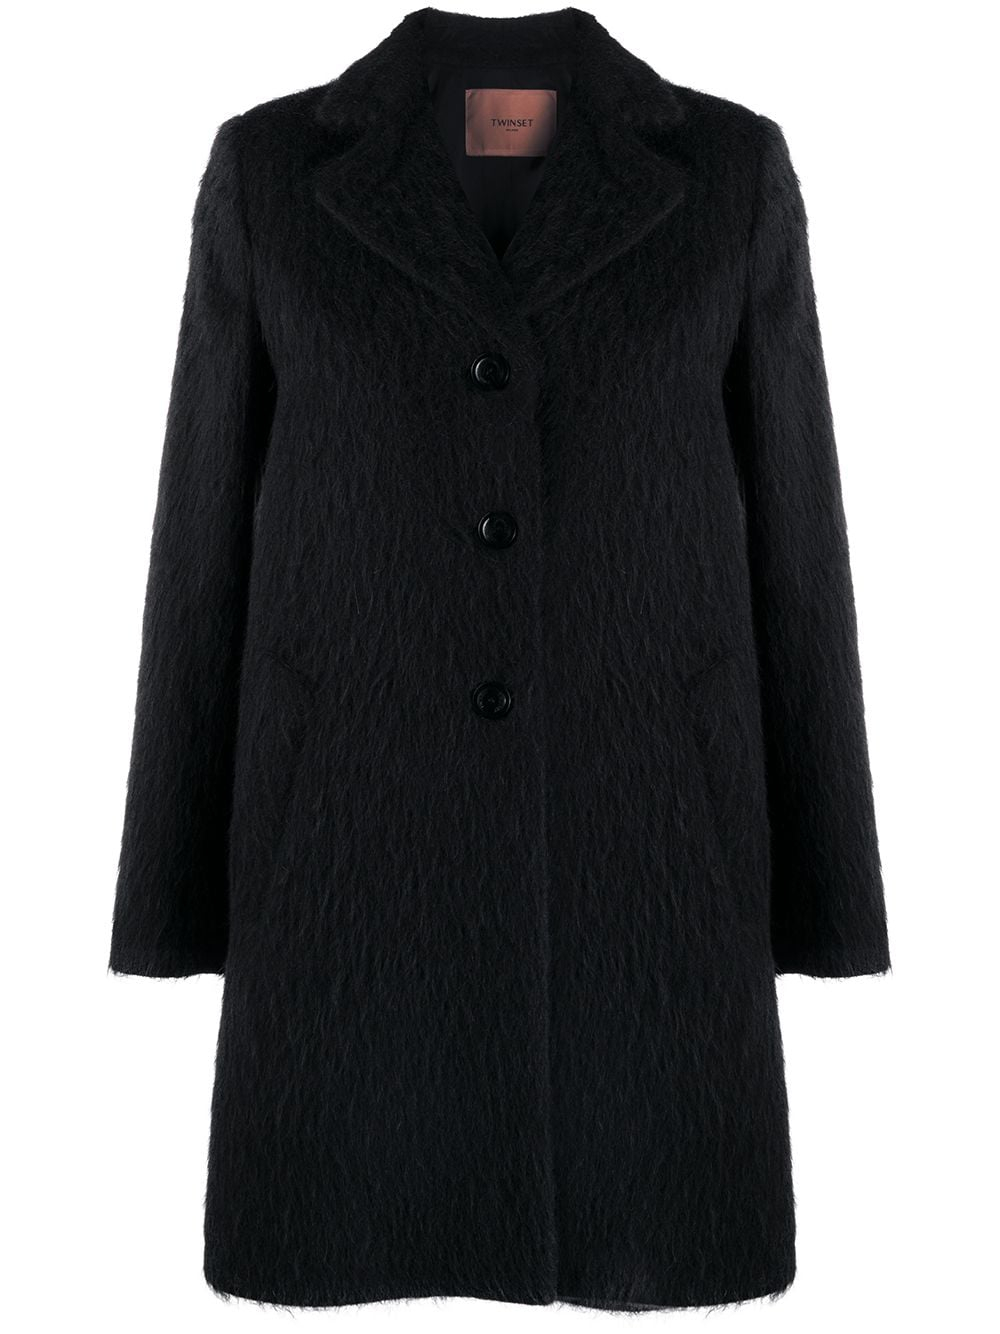 SHOPPING ON LINE TWINSET MILANO CAPPOTTO IN PANNO SPAZZOLATO NEW COLLECTION WOMEN'S FALL WINTER 2020/2021